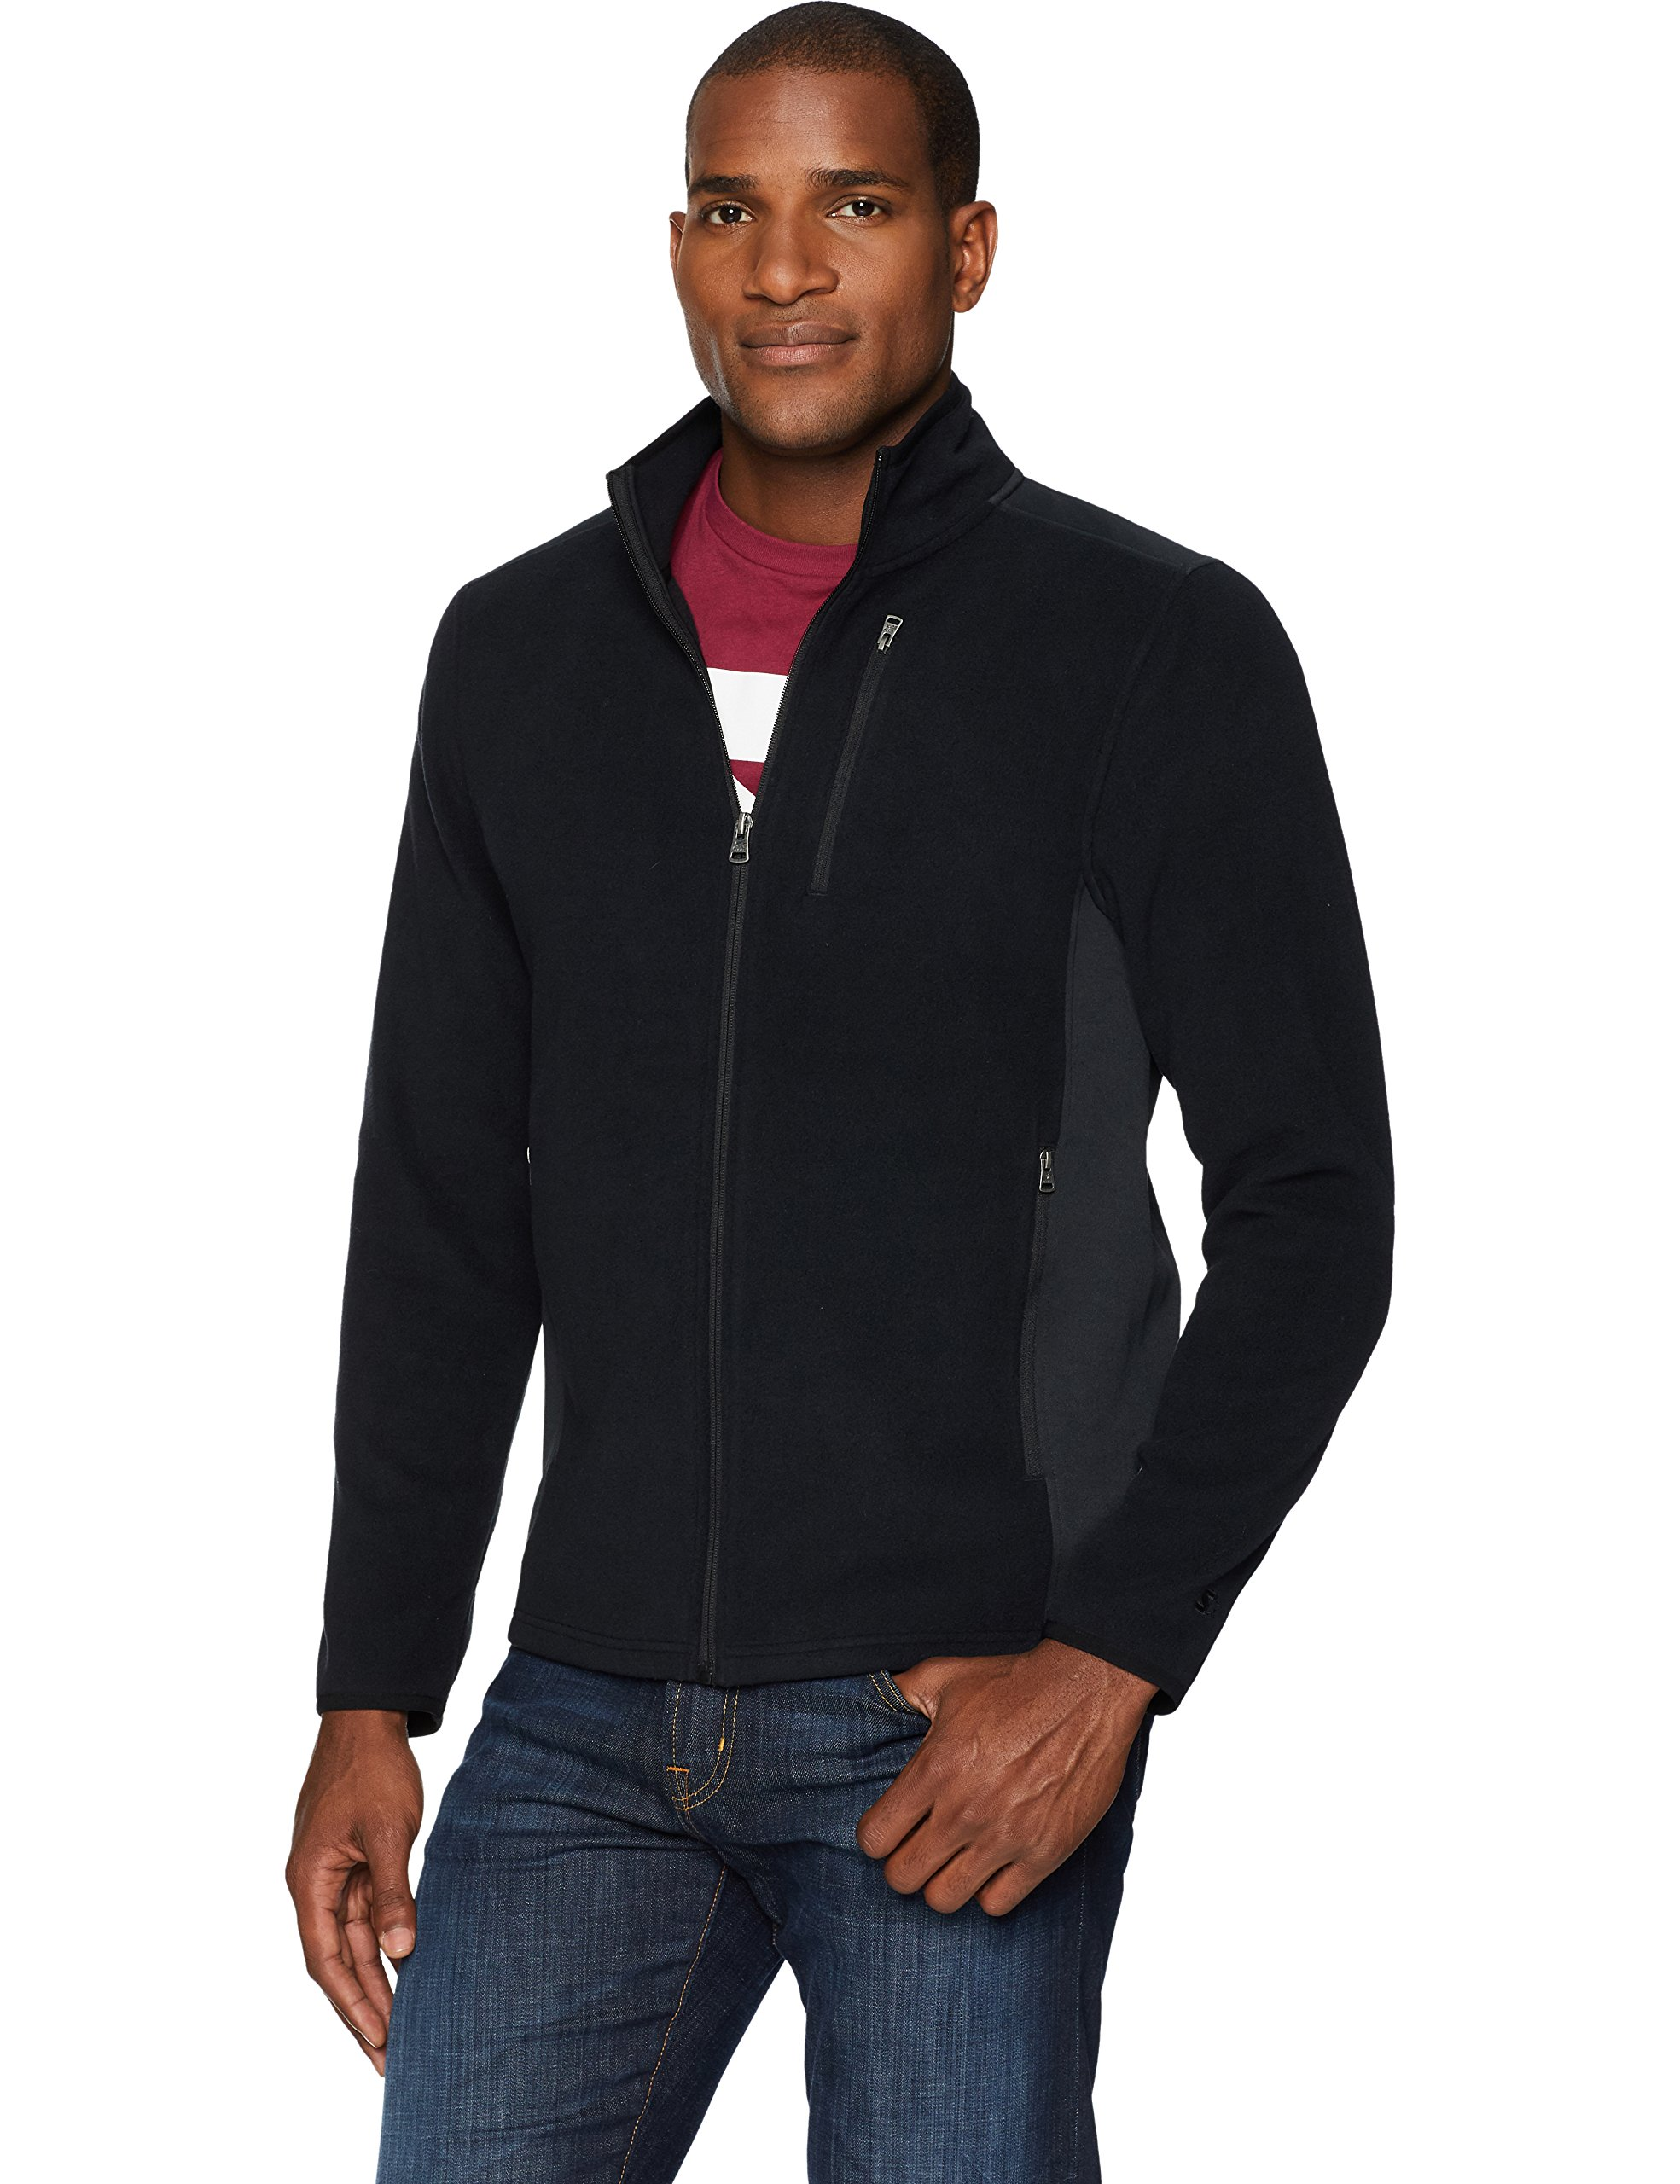 Starter Men's Polar Fleece Jacket, Prime Exclusive, Black, Medium by Starter